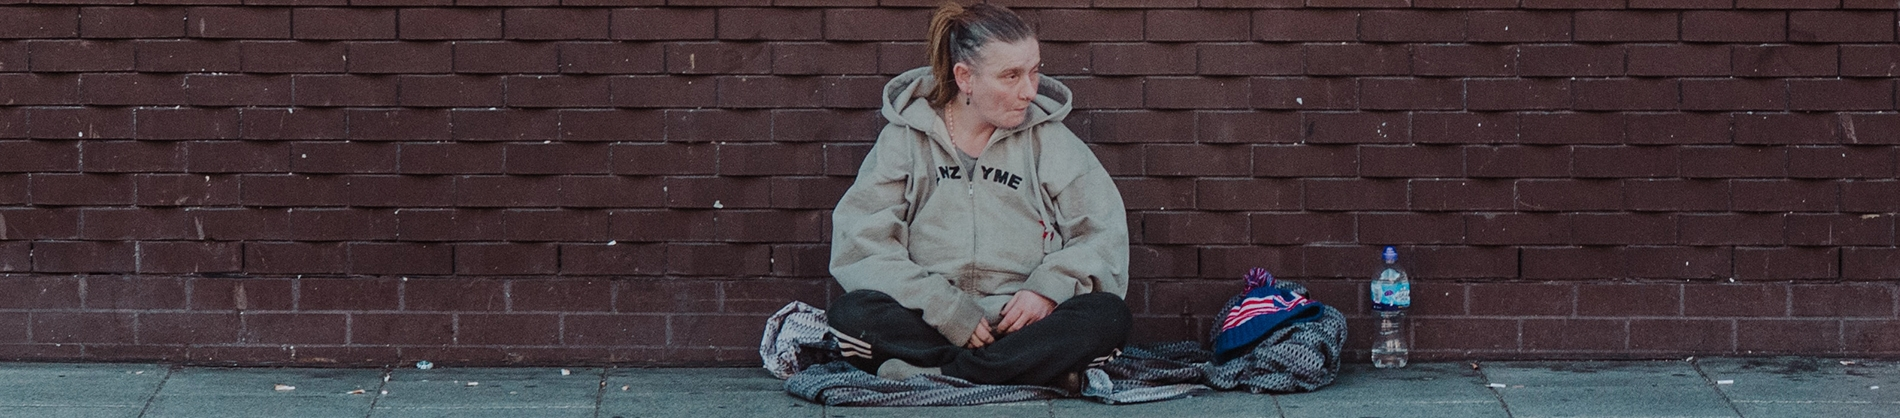 A homeless women sat by a brick wall